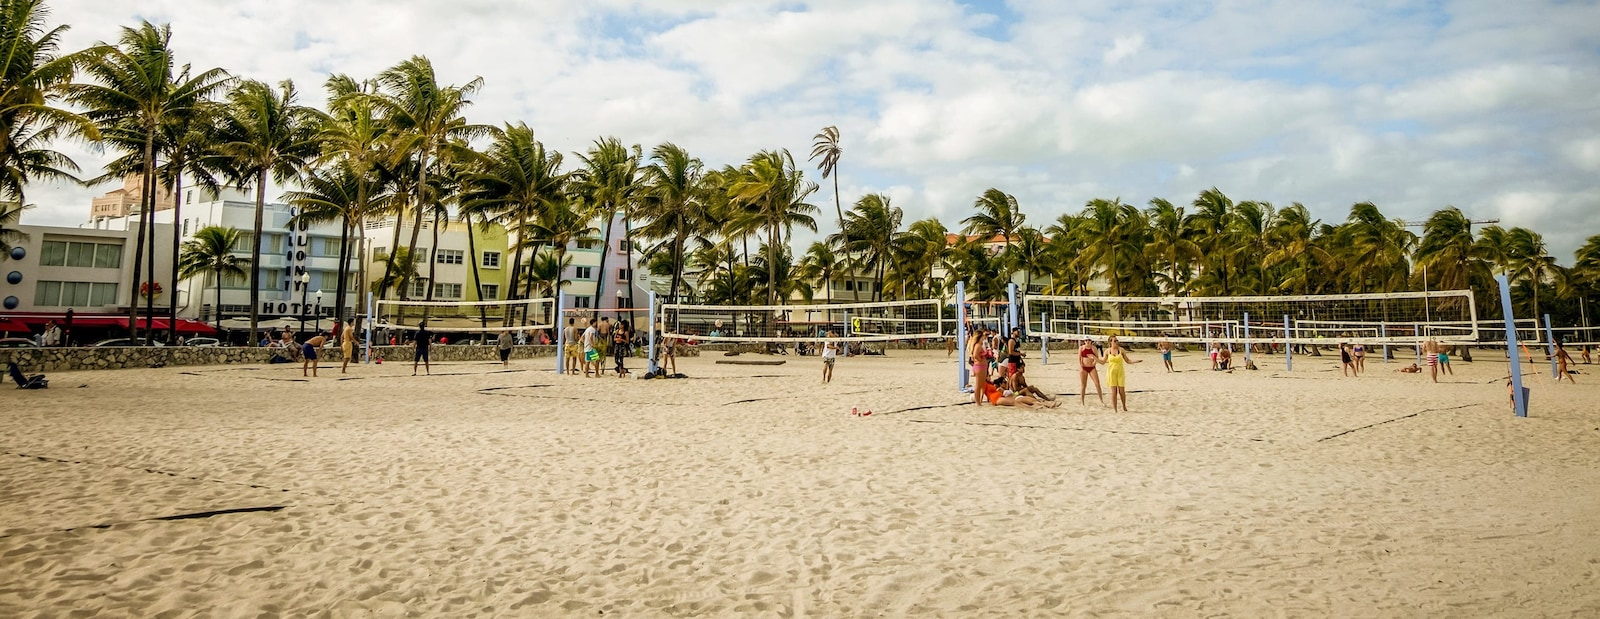 Alquileres vacacionales en Miami Beach - South Beach